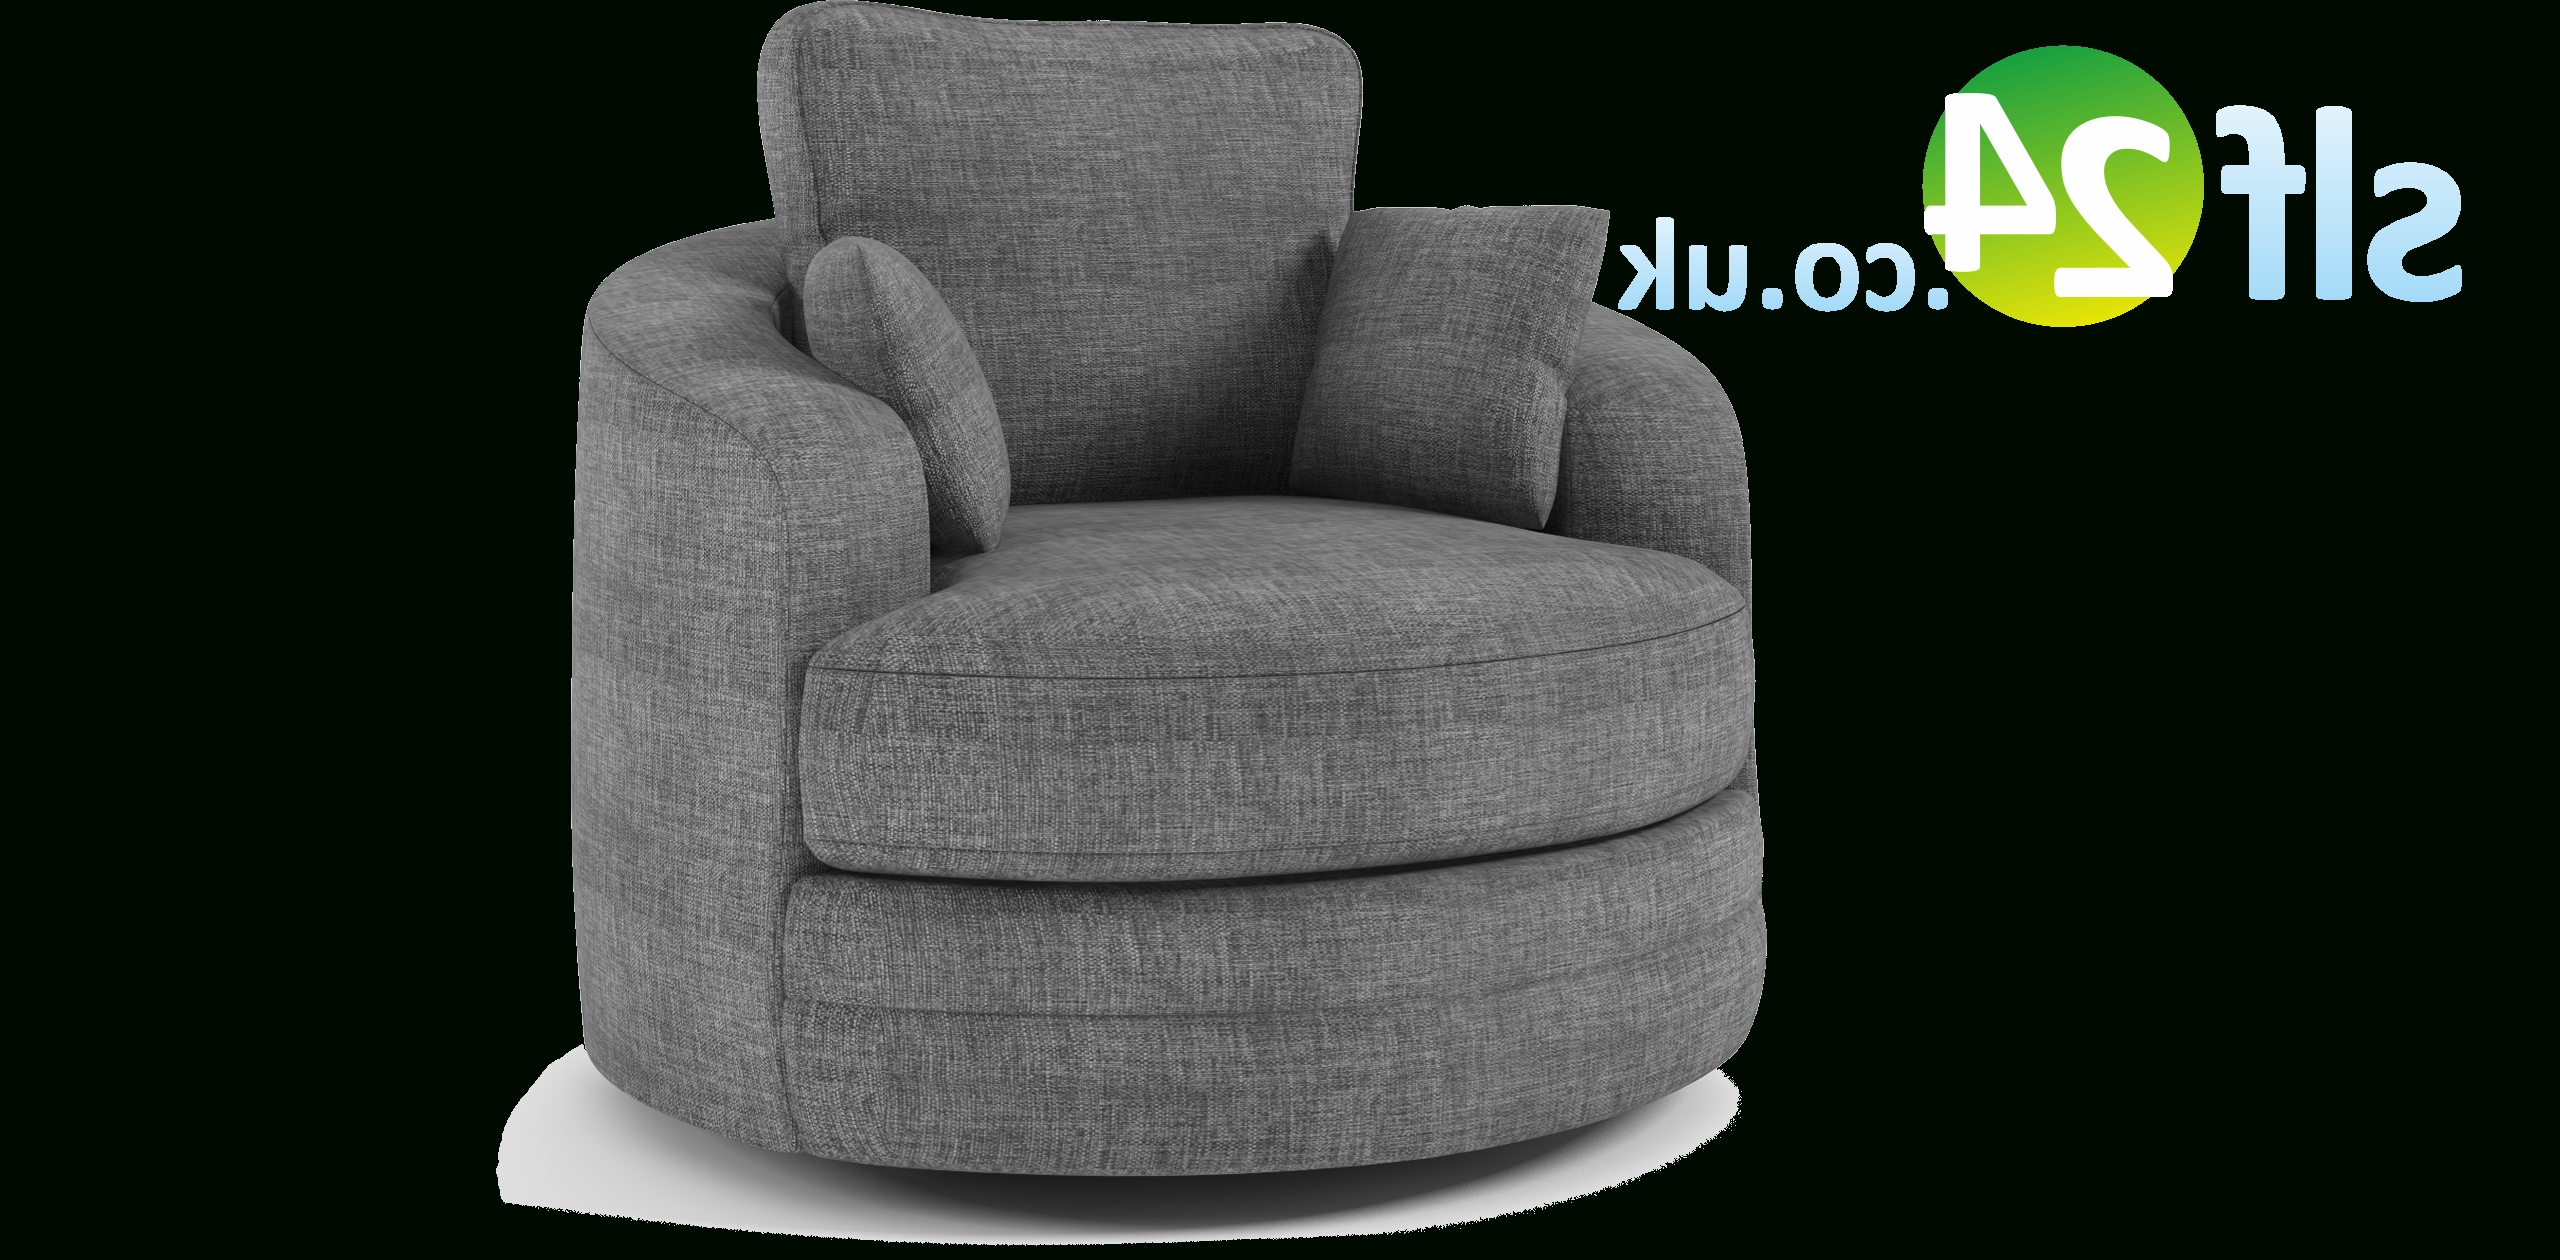 Swivel Sofa Chairs Throughout Well Known Love Swivel Cuddle Chair Sofa (View 16 of 20)